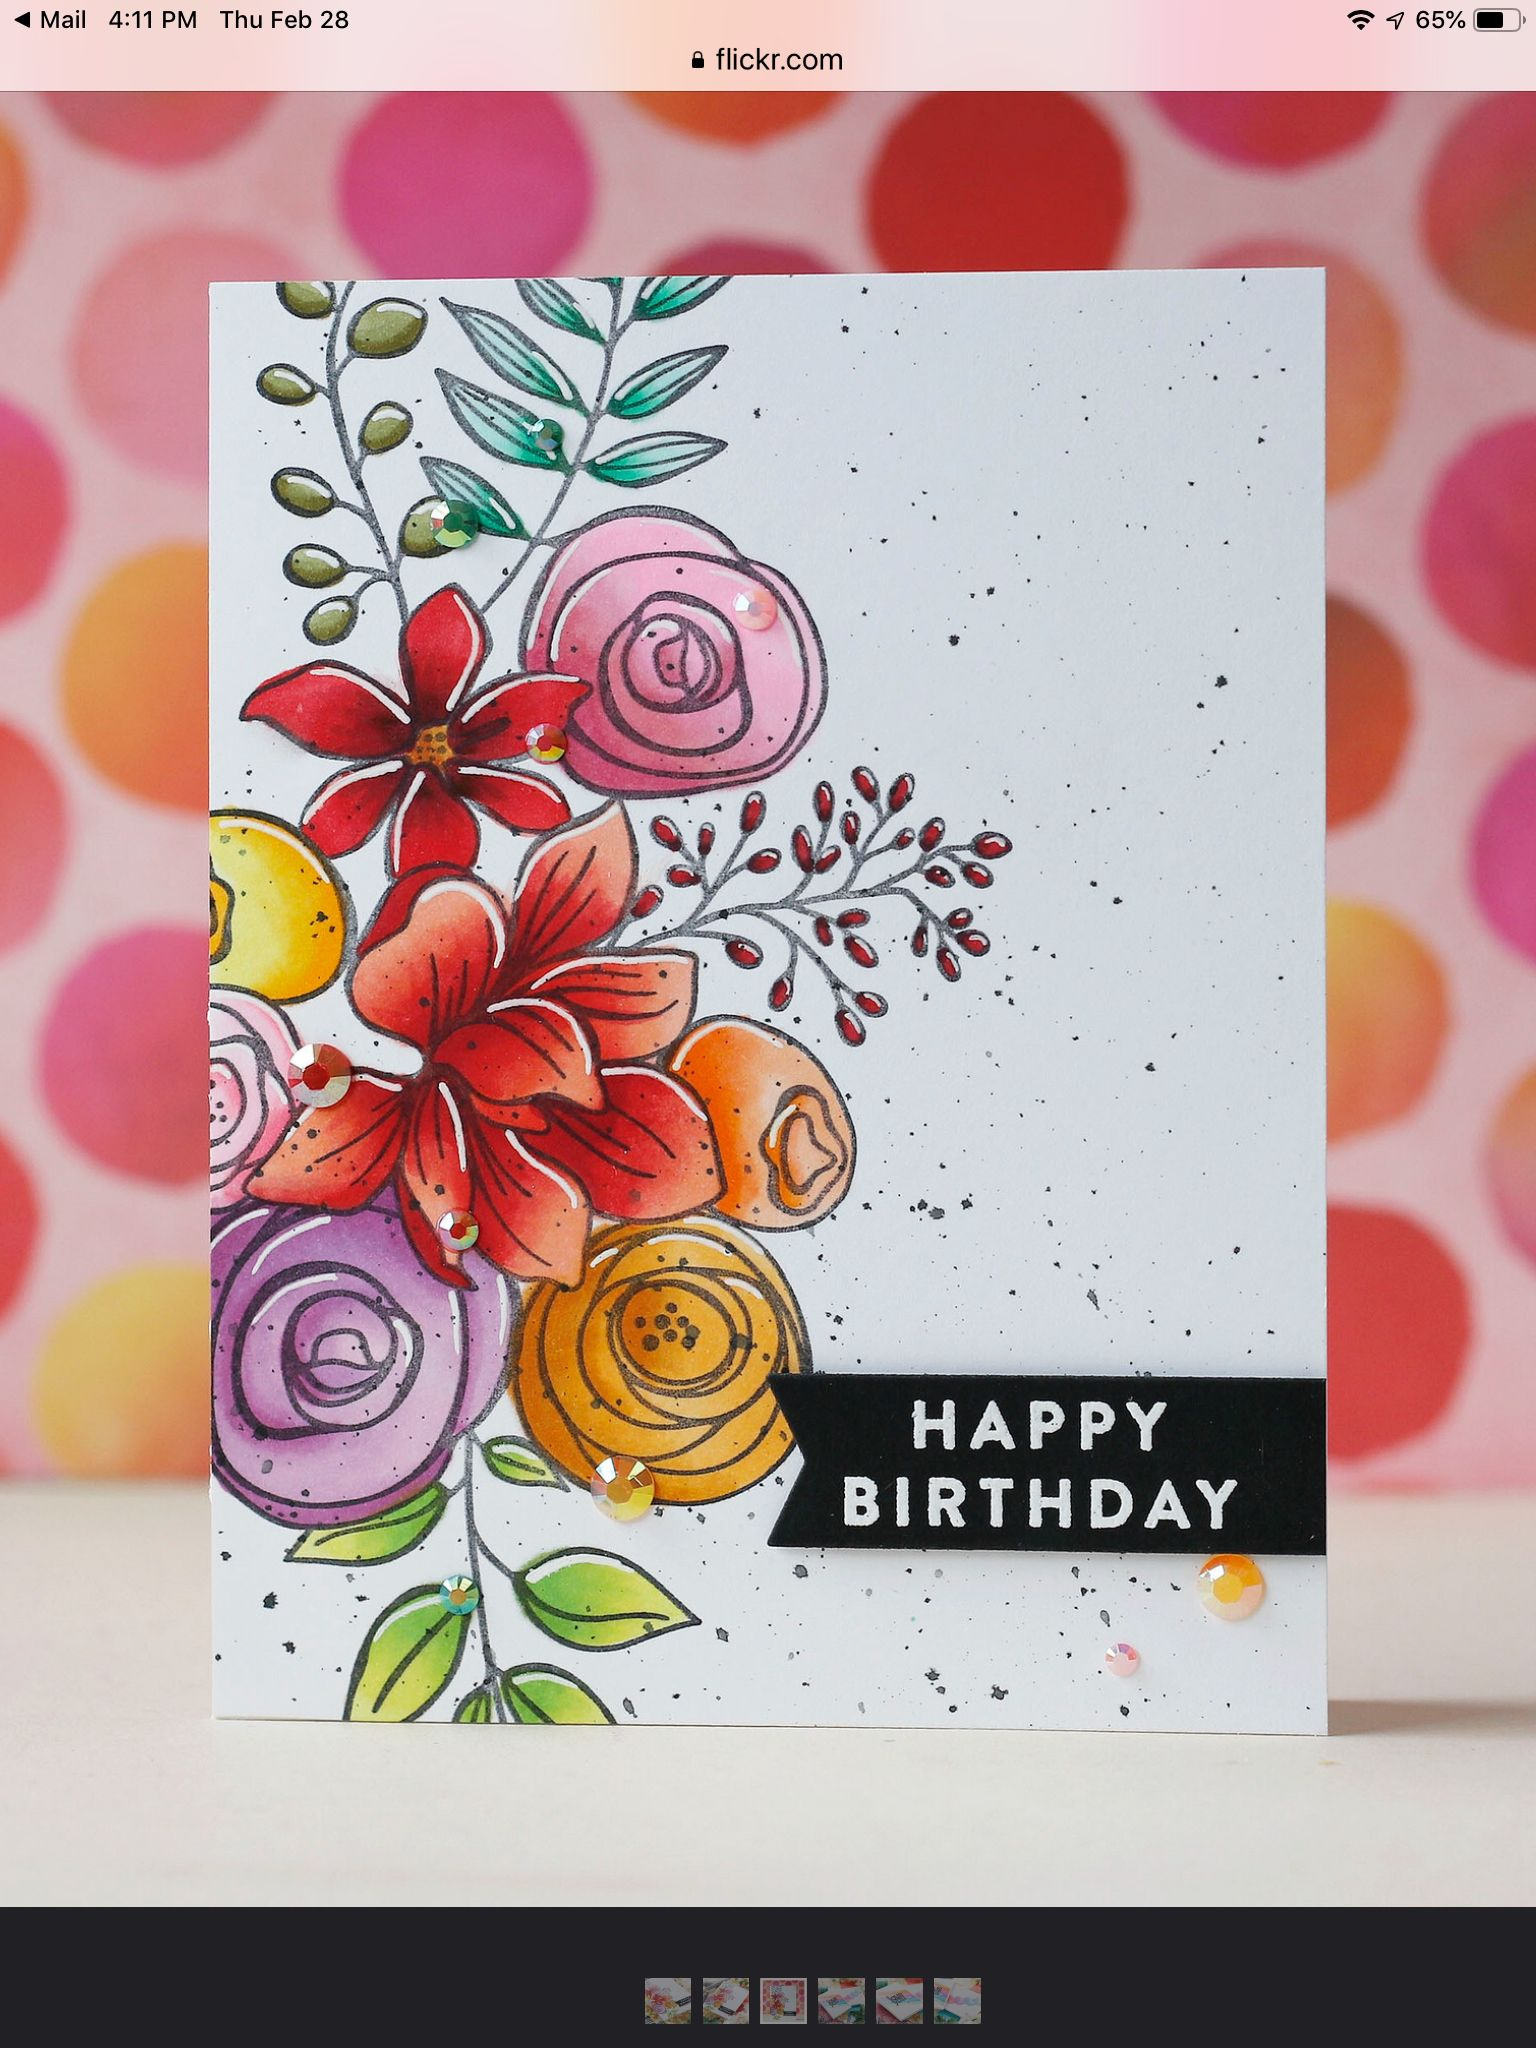 Pin By Janice Johnson Valentine On Simon Sketched Flowers Birthday Card Sayings Birthday Cards Diy Cool Birthday Cards